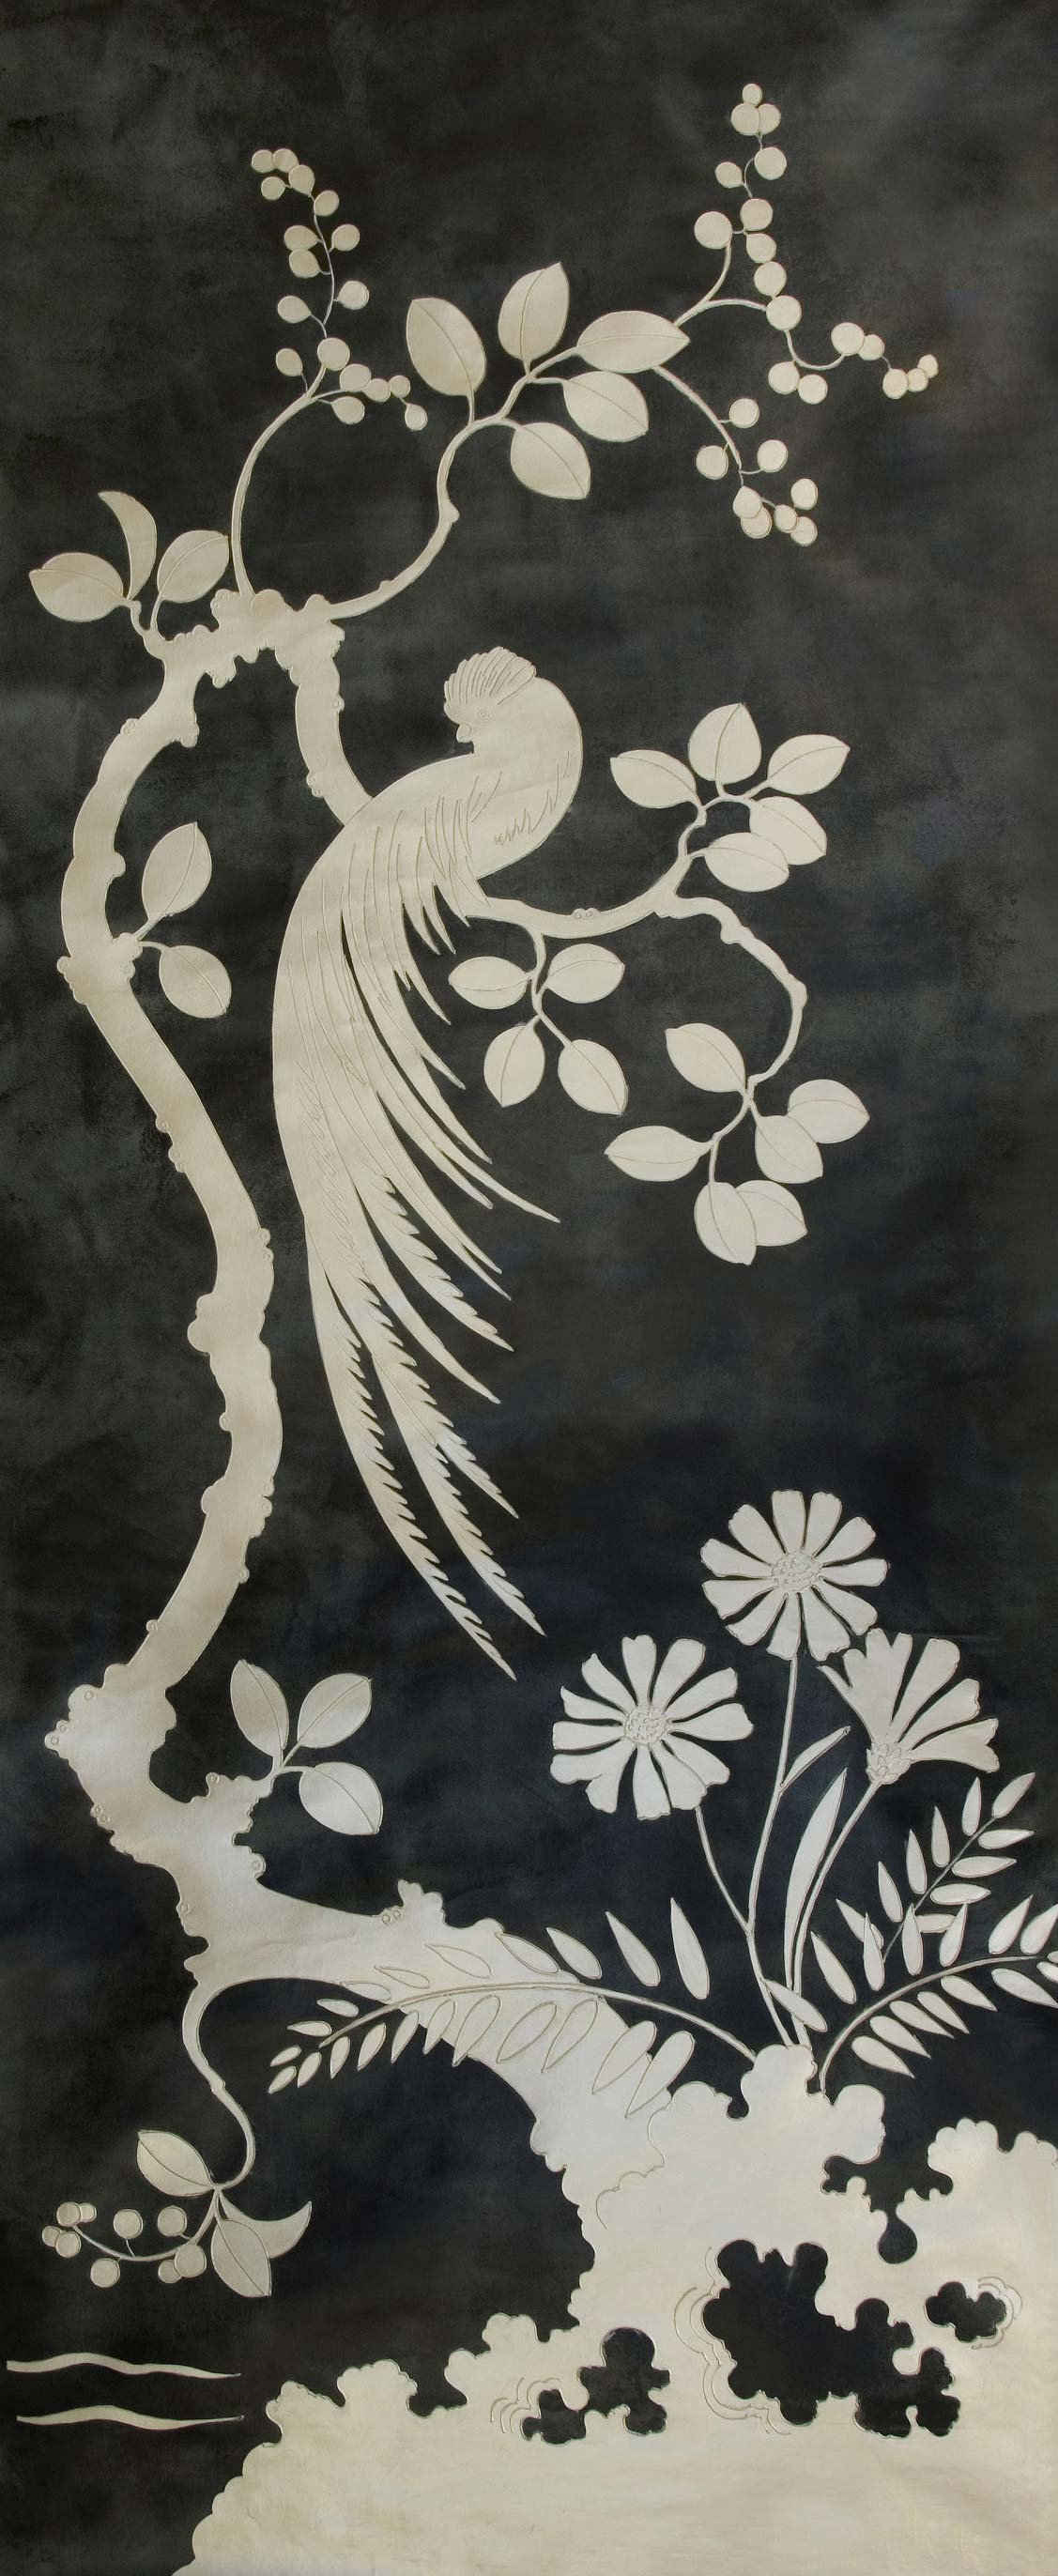 chinon-Fromental-chinoiserie-black-white-drd-wallpaper-wp520213